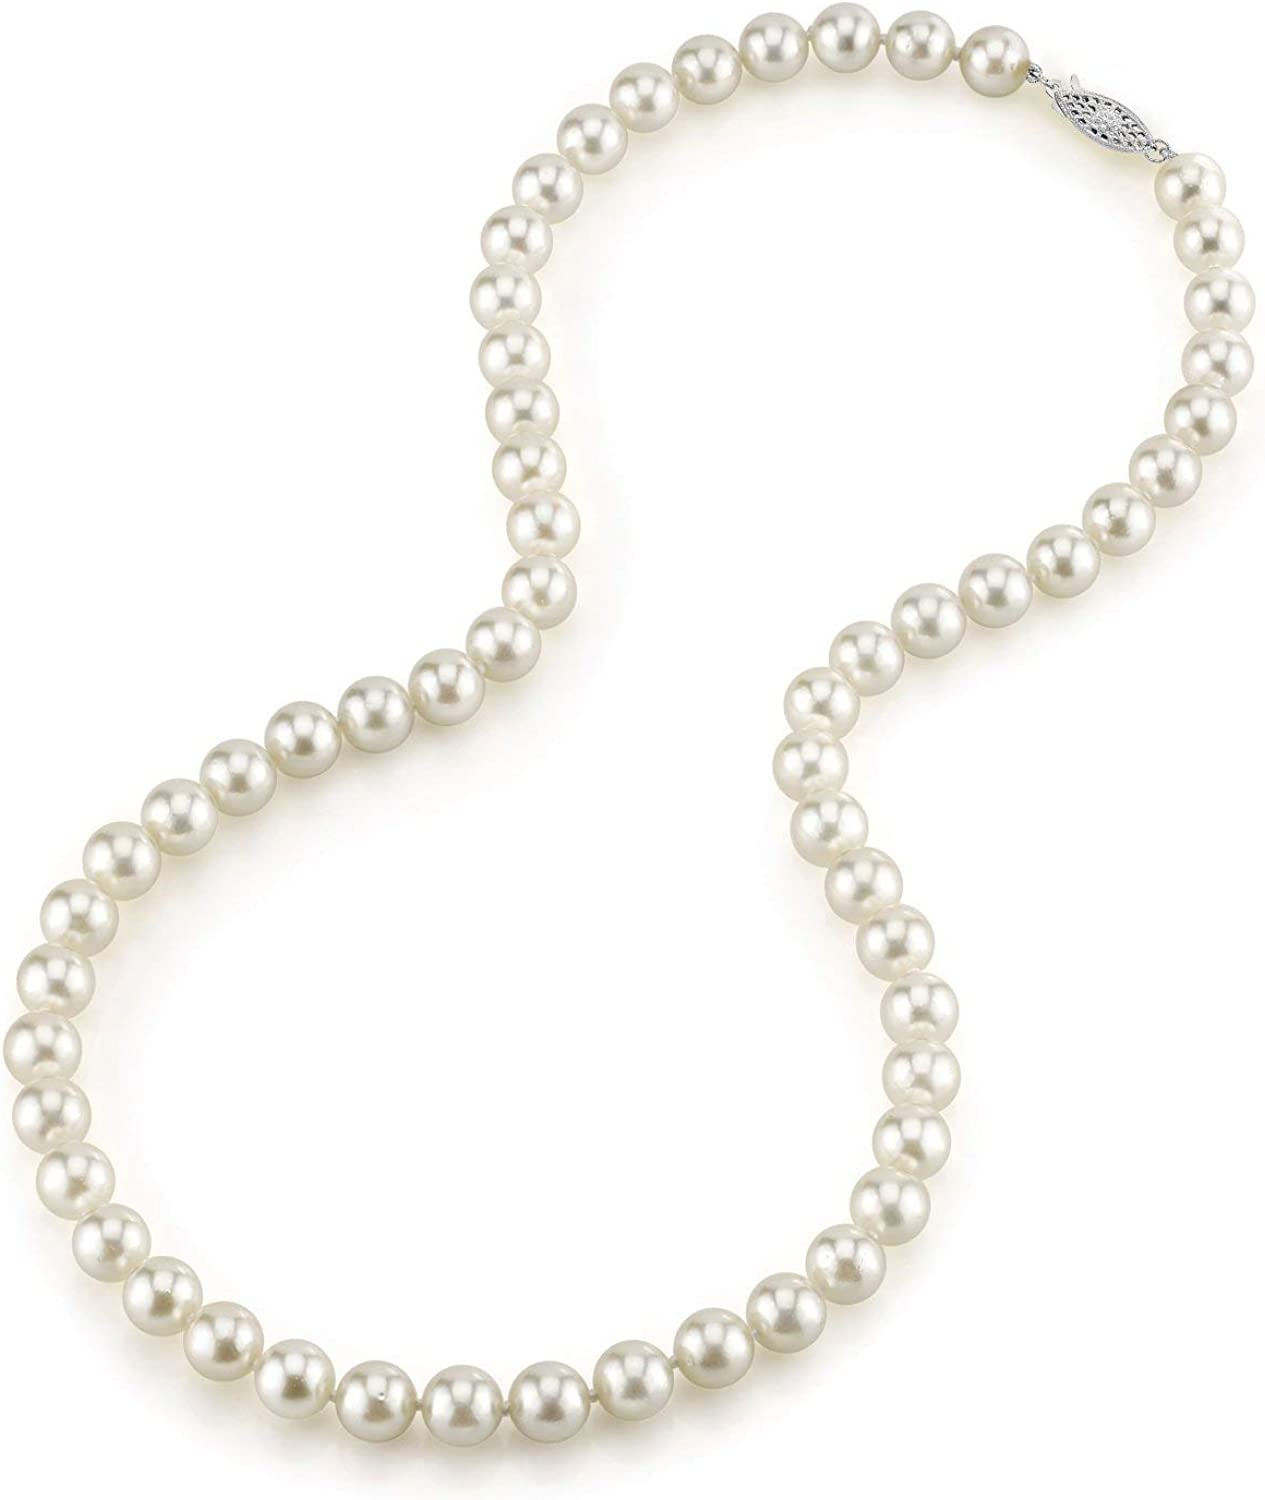 THE PEARL SOURCE 14K Gold 5.0-5.5mm Round Genuine White Japanese Akoya Saltwater Cultured Pearl Necklace in 18